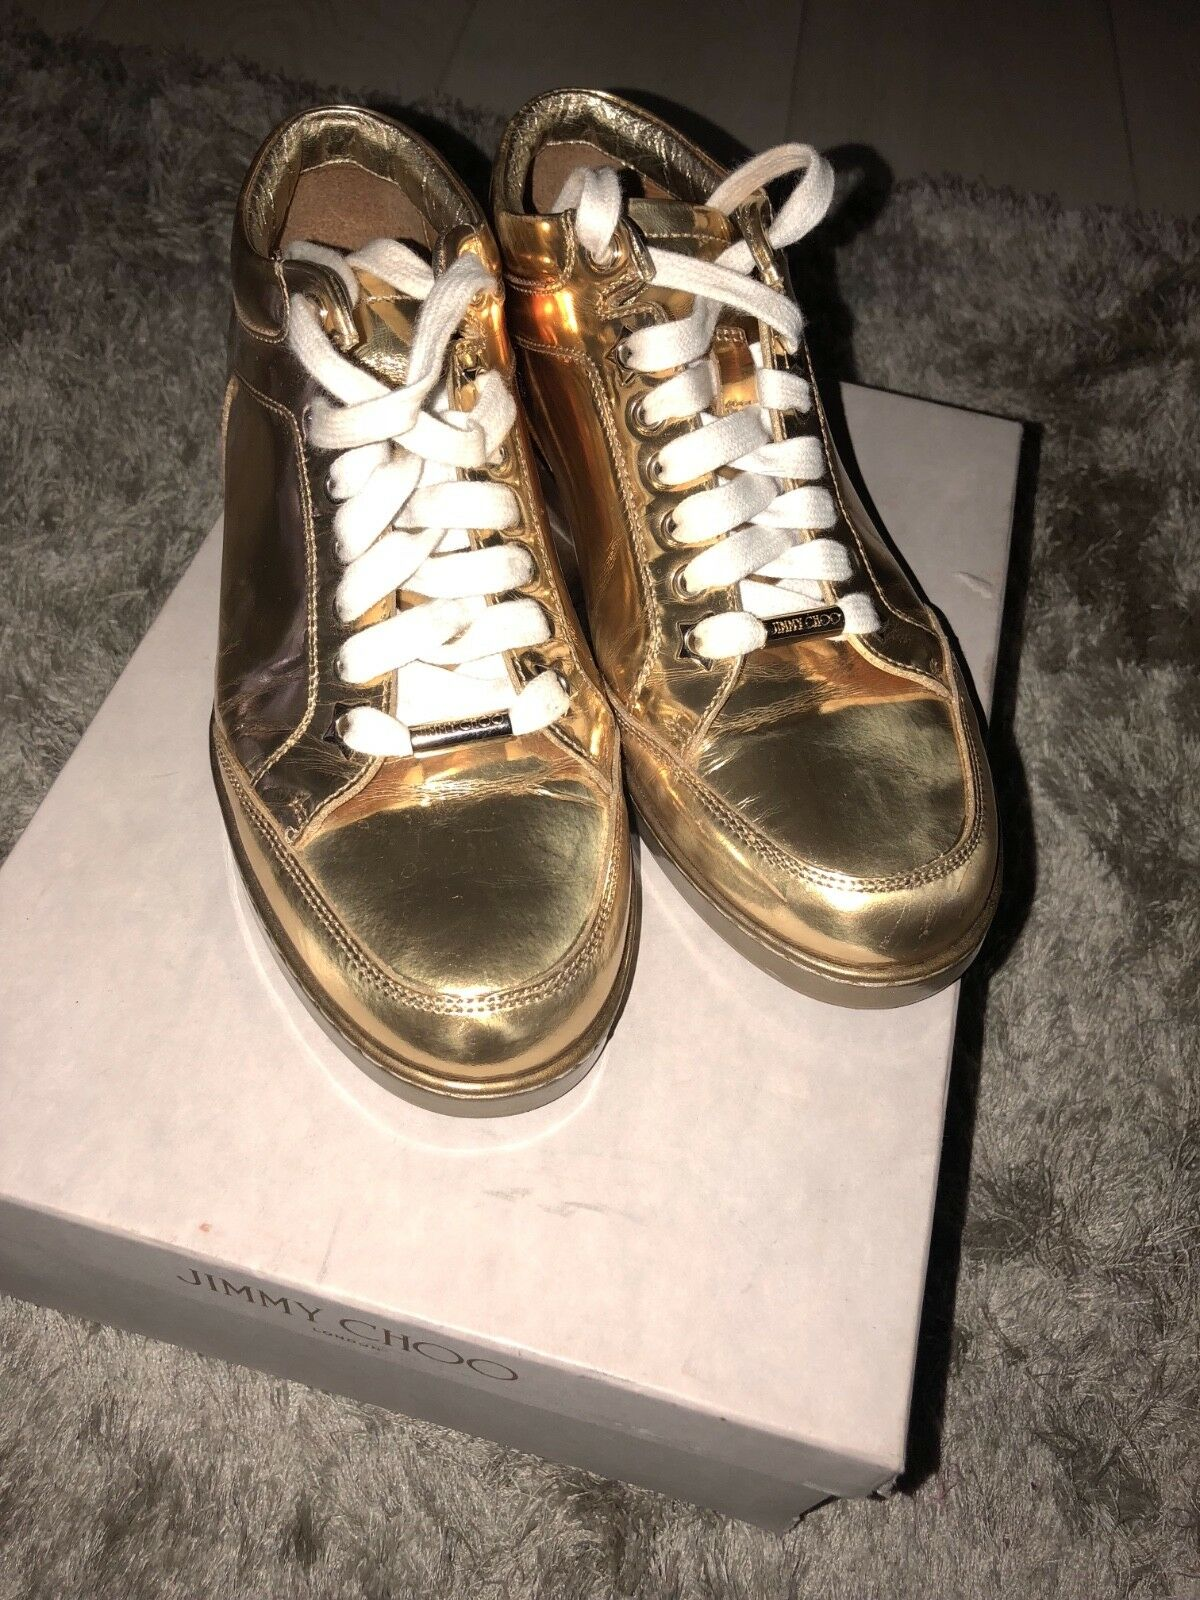 gold, womens Jimmy Choo trainers, size 3.5 worn 5 times